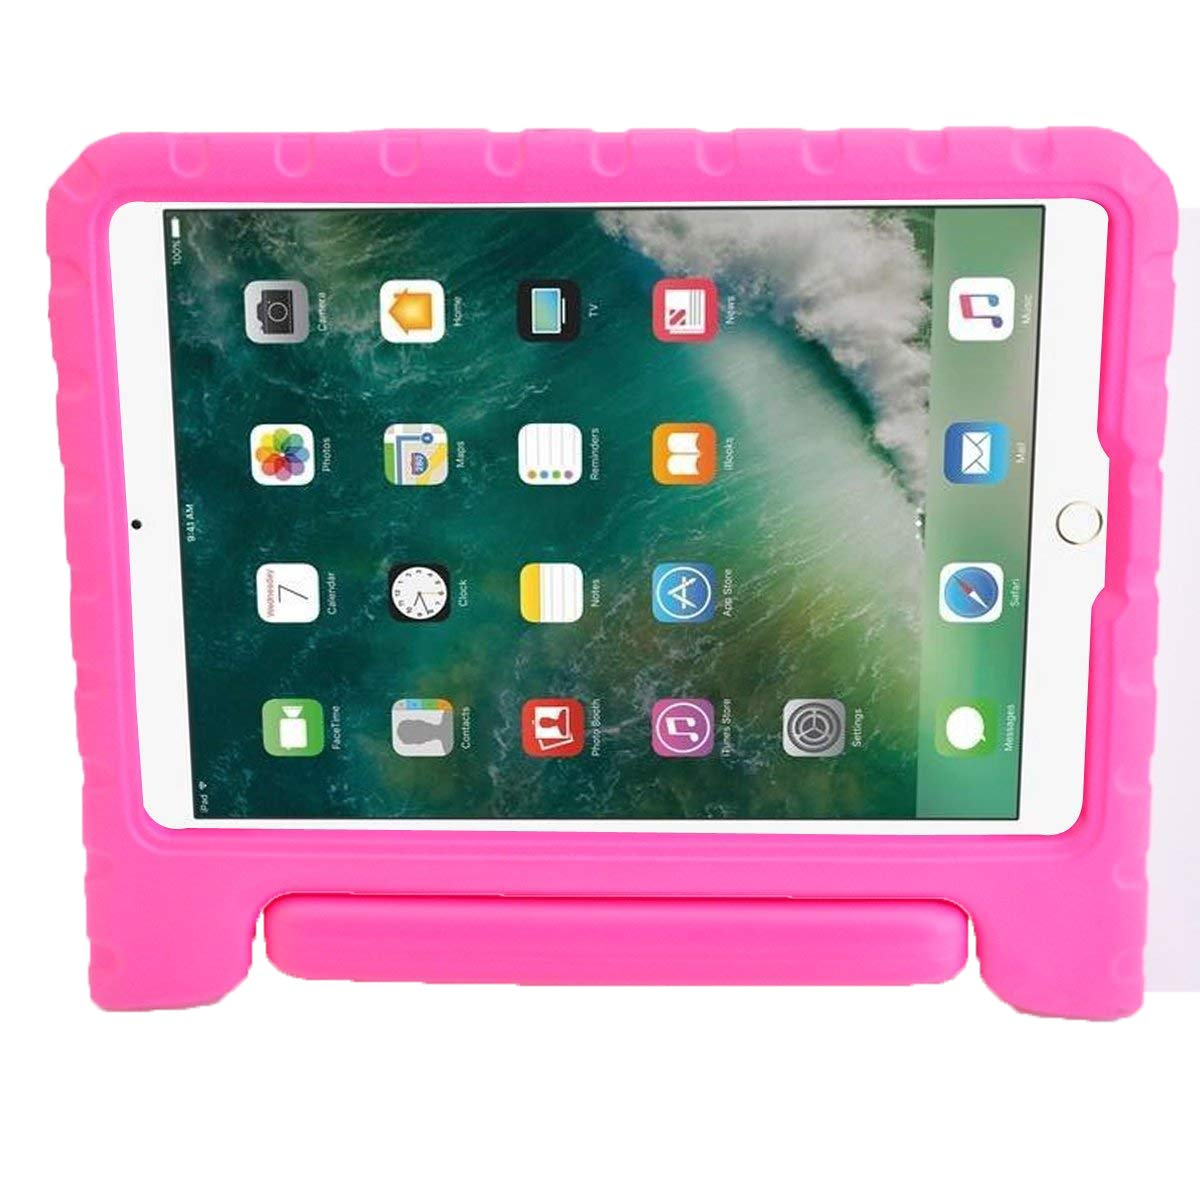 BMOUO Case for New iPad 9.7 Inch 2018/2017 - Shockproof Case Light Weight Kids Case Cover Handle Stand Case for iPad 9.7 Inch 2019/2018 New Model – Rose